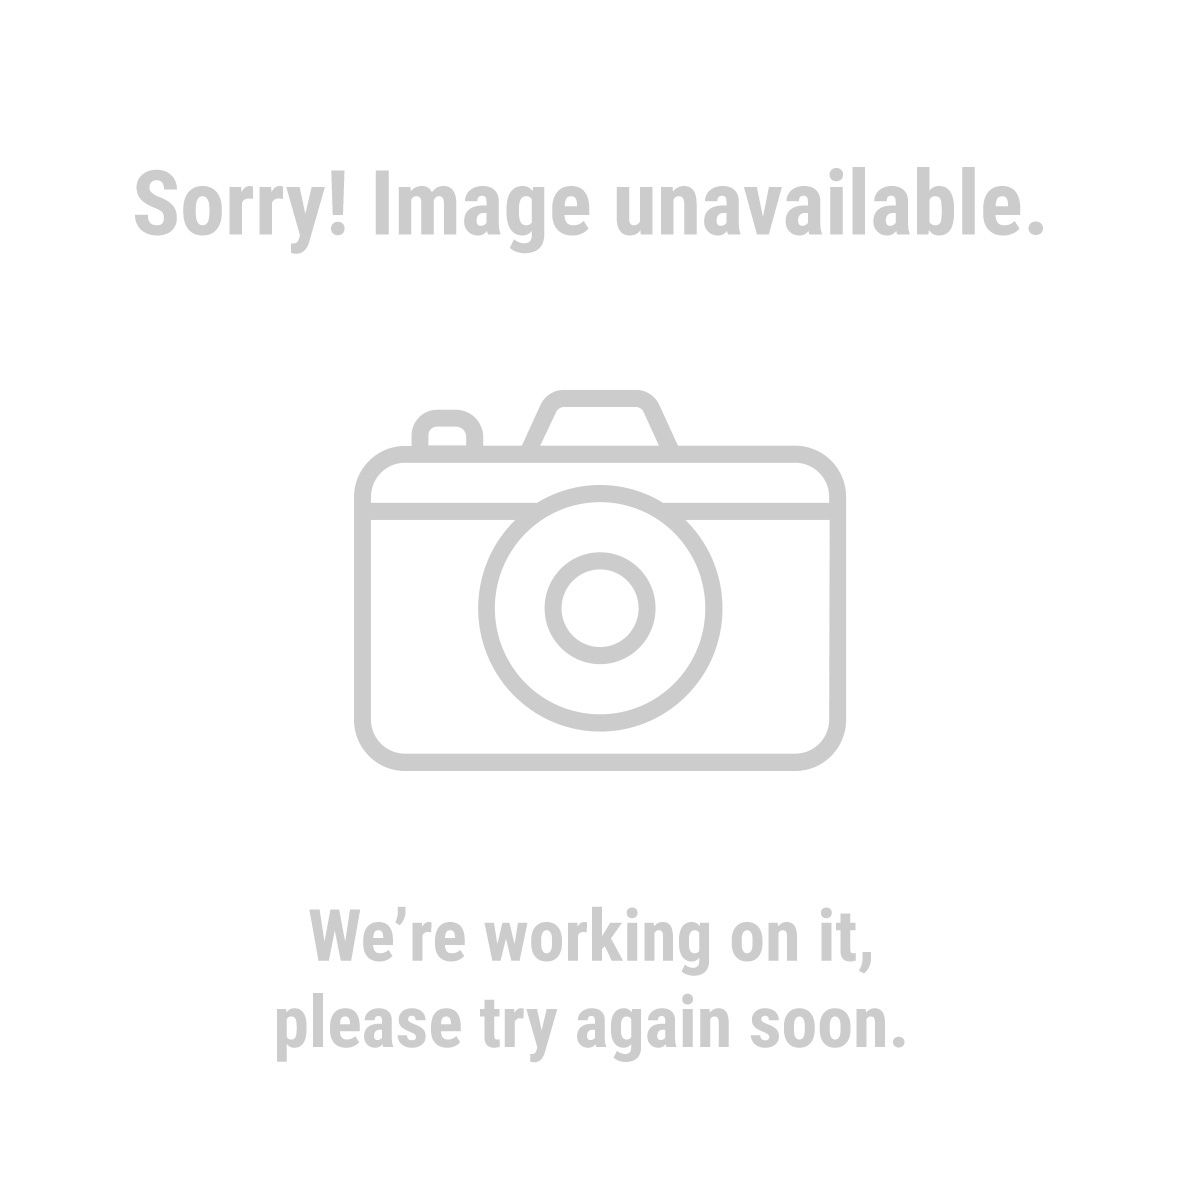 Admiral 62733 7-1/4 in. 24T Framing Circular Saw Blade